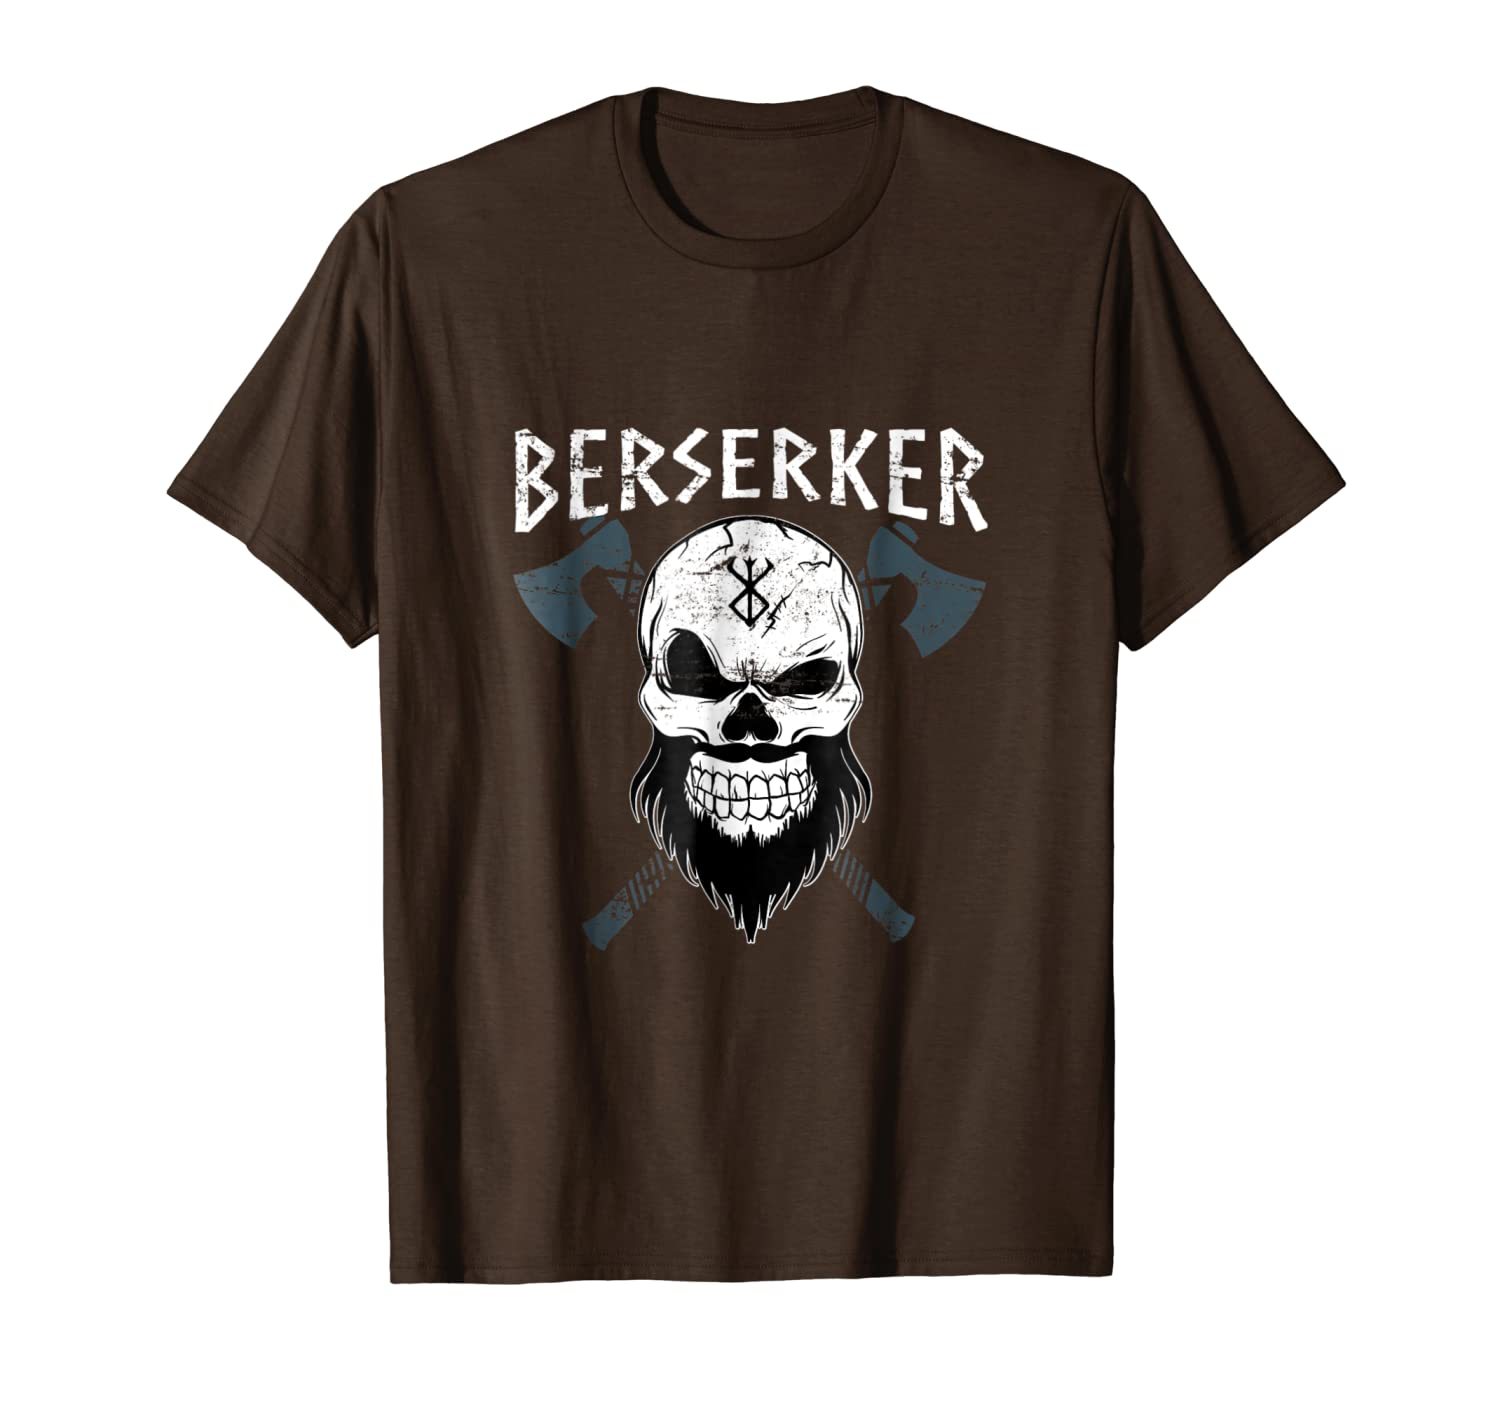 Berserker Viking T Shirt With Vikings Axes North Heritage-TH